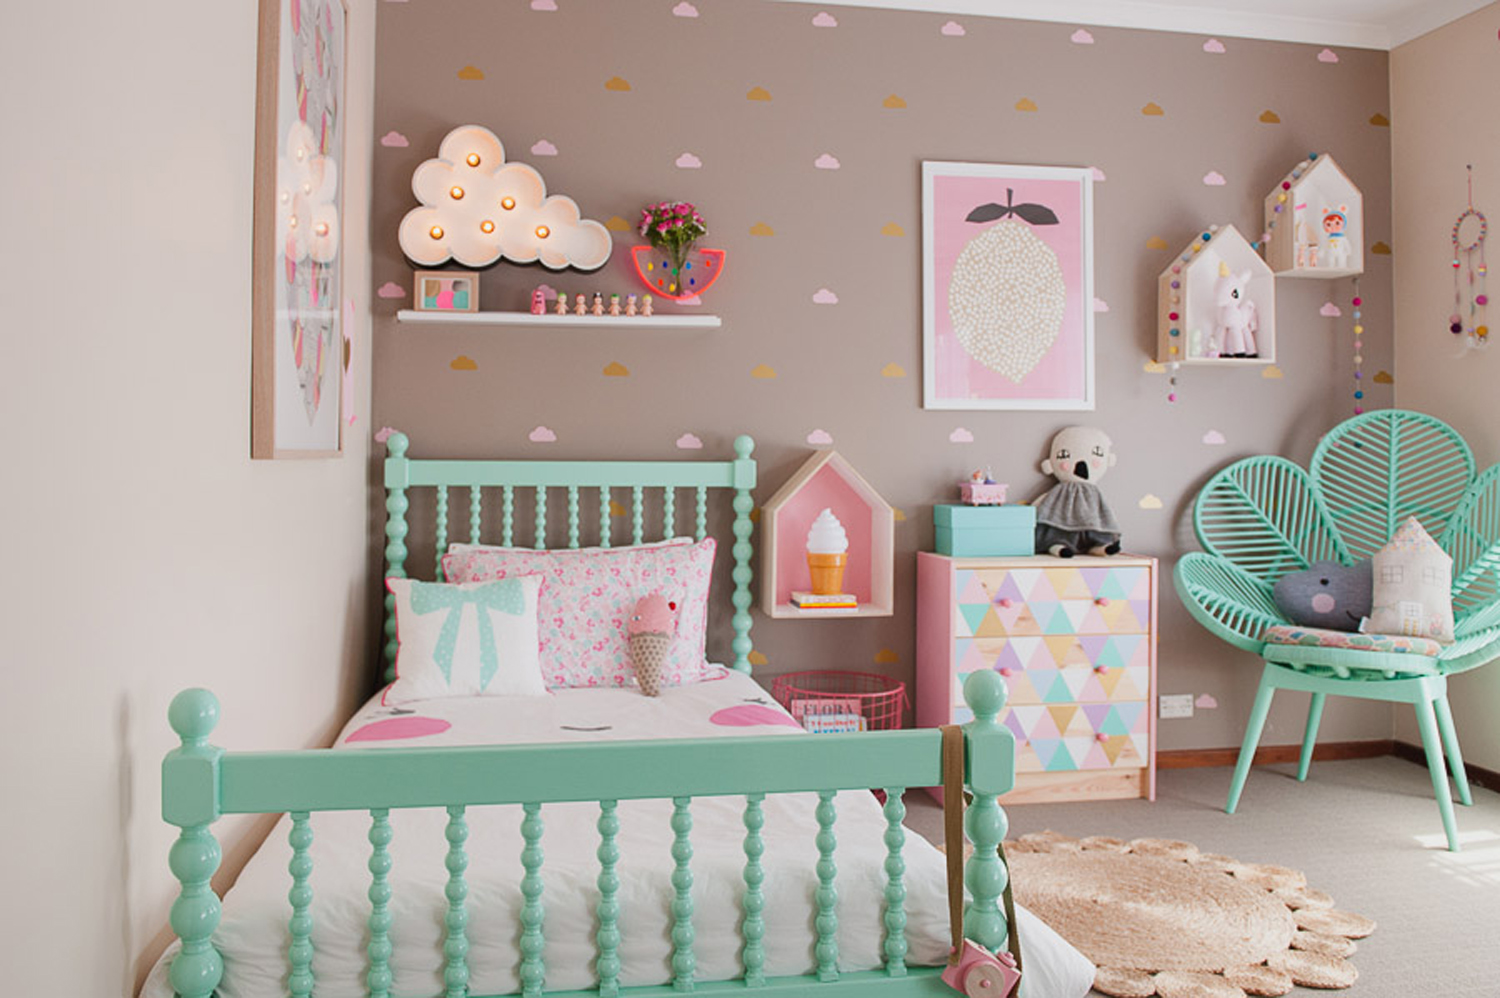 Kids Rooms Ideas Simple 27 Stylish Ways To Decorate Your Children's Bedroom  The Luxpad